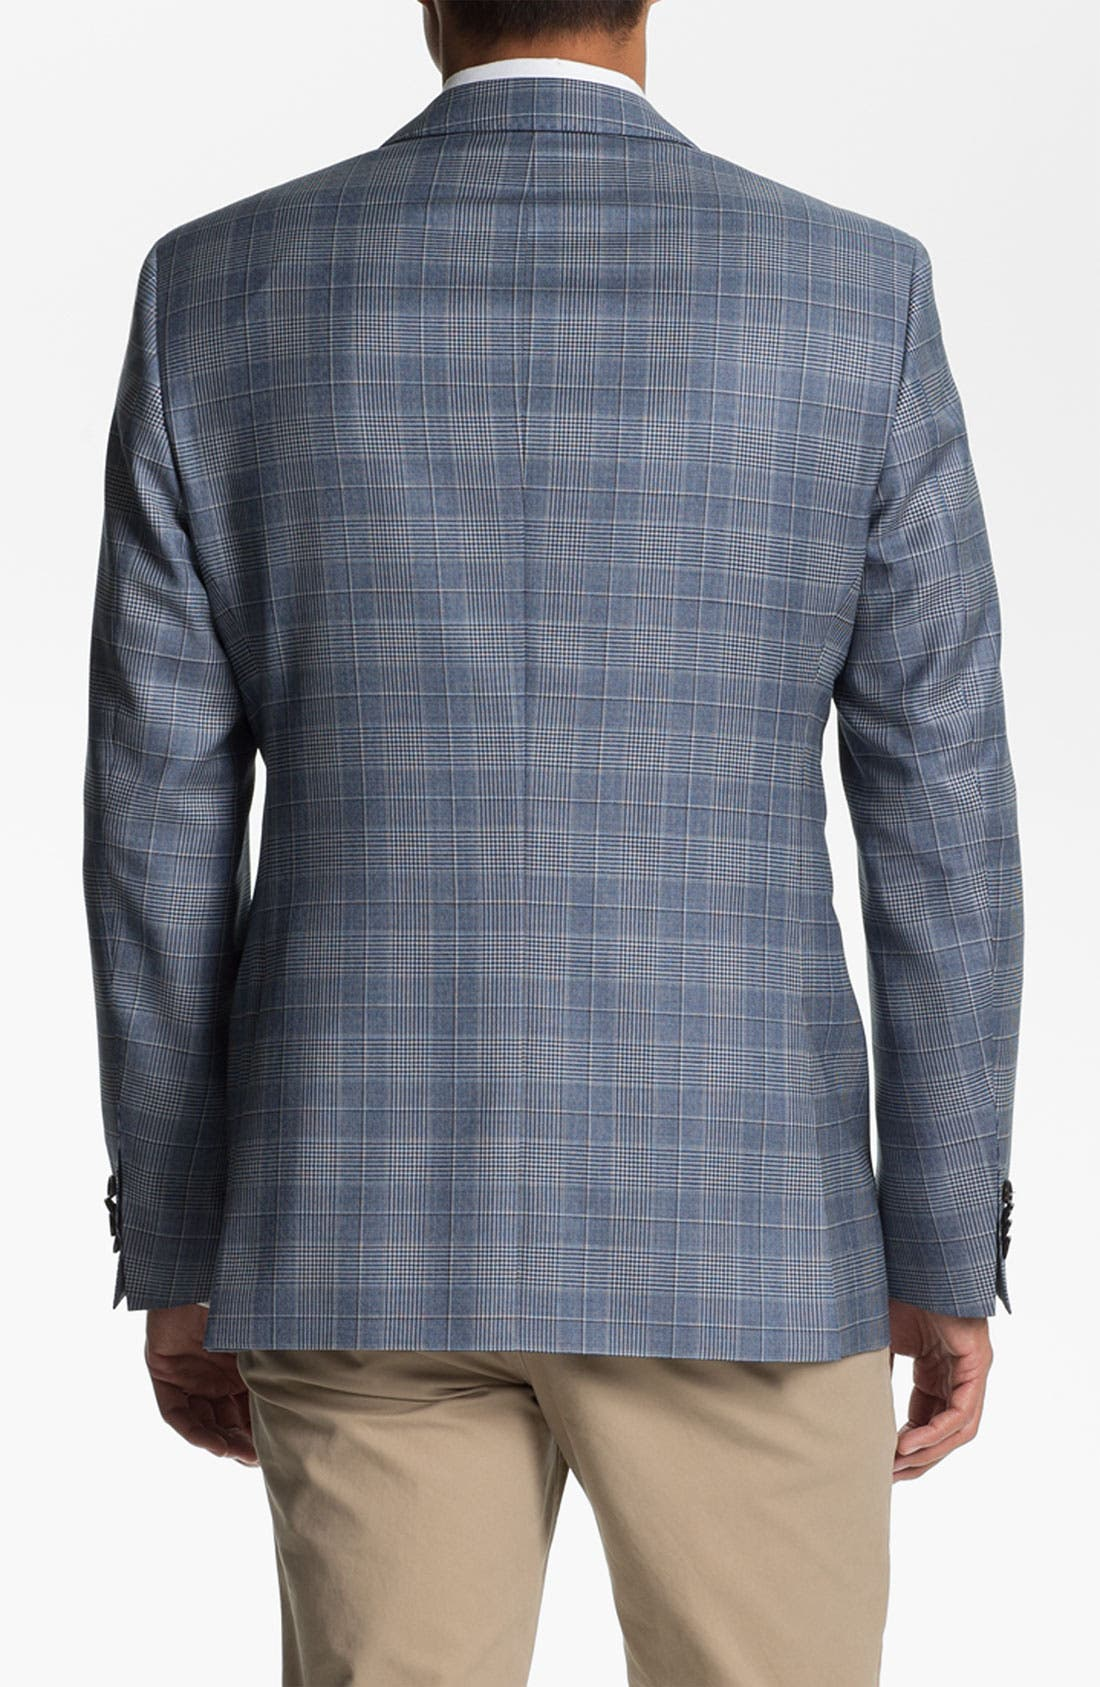 Alternate Image 2  - BOSS Black 'James' Trim Fit Plaid Sportcoat